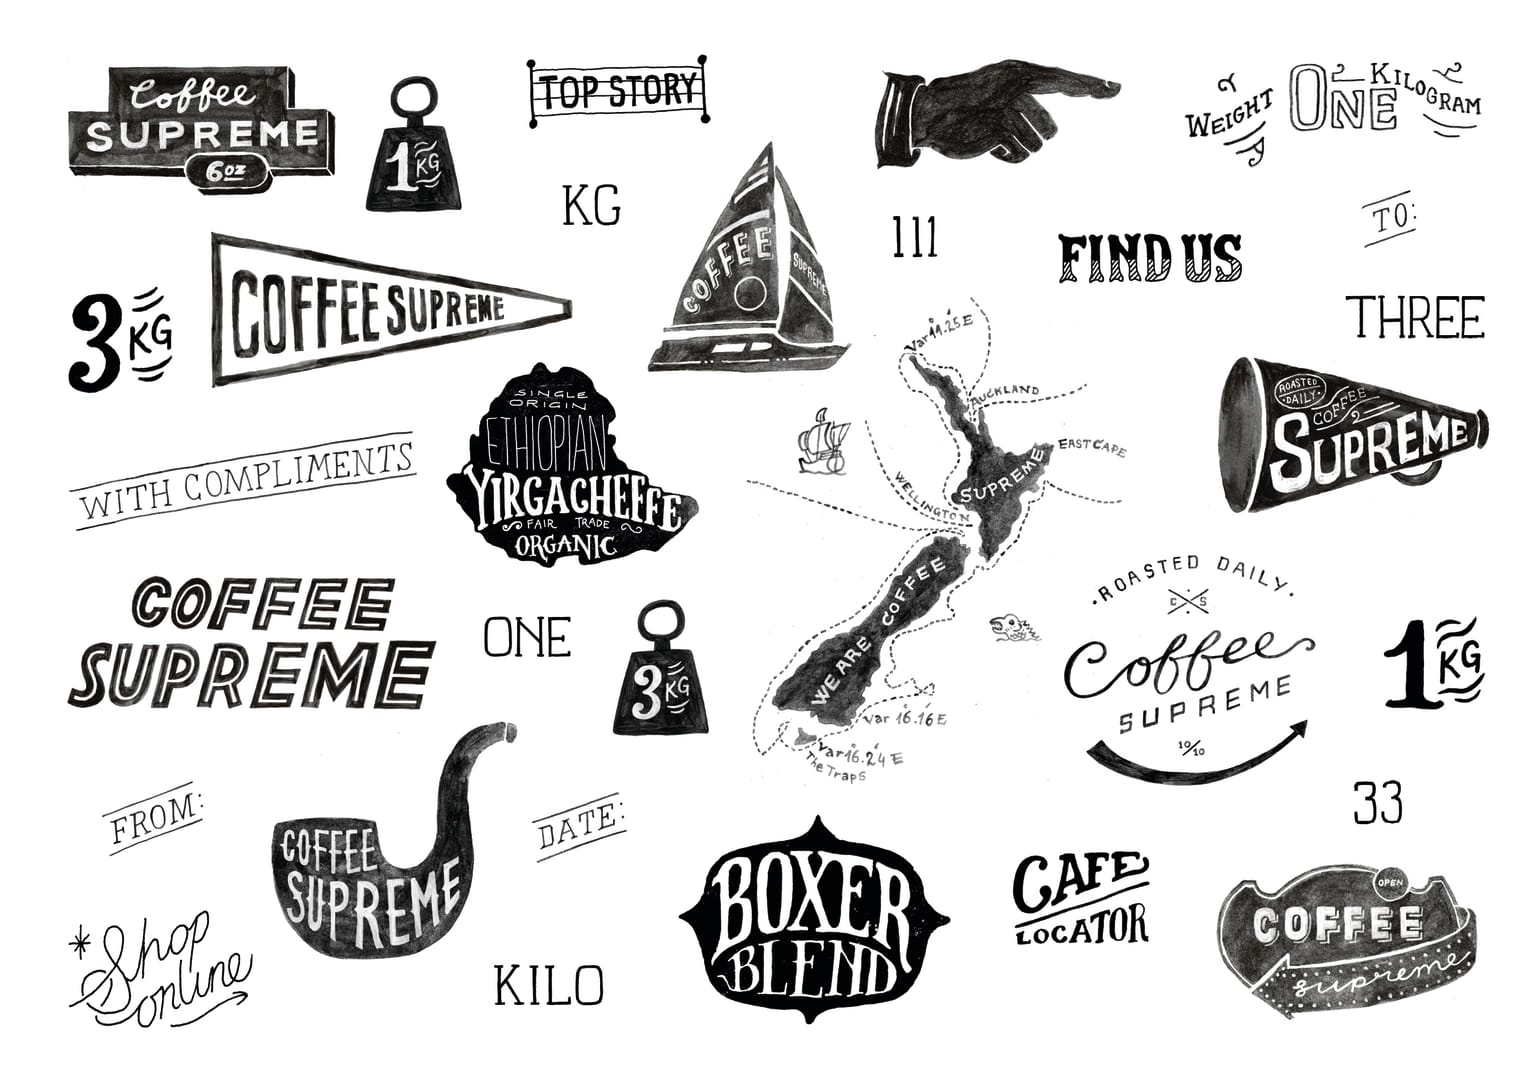 Branding, print, digital: Coffee Supreme